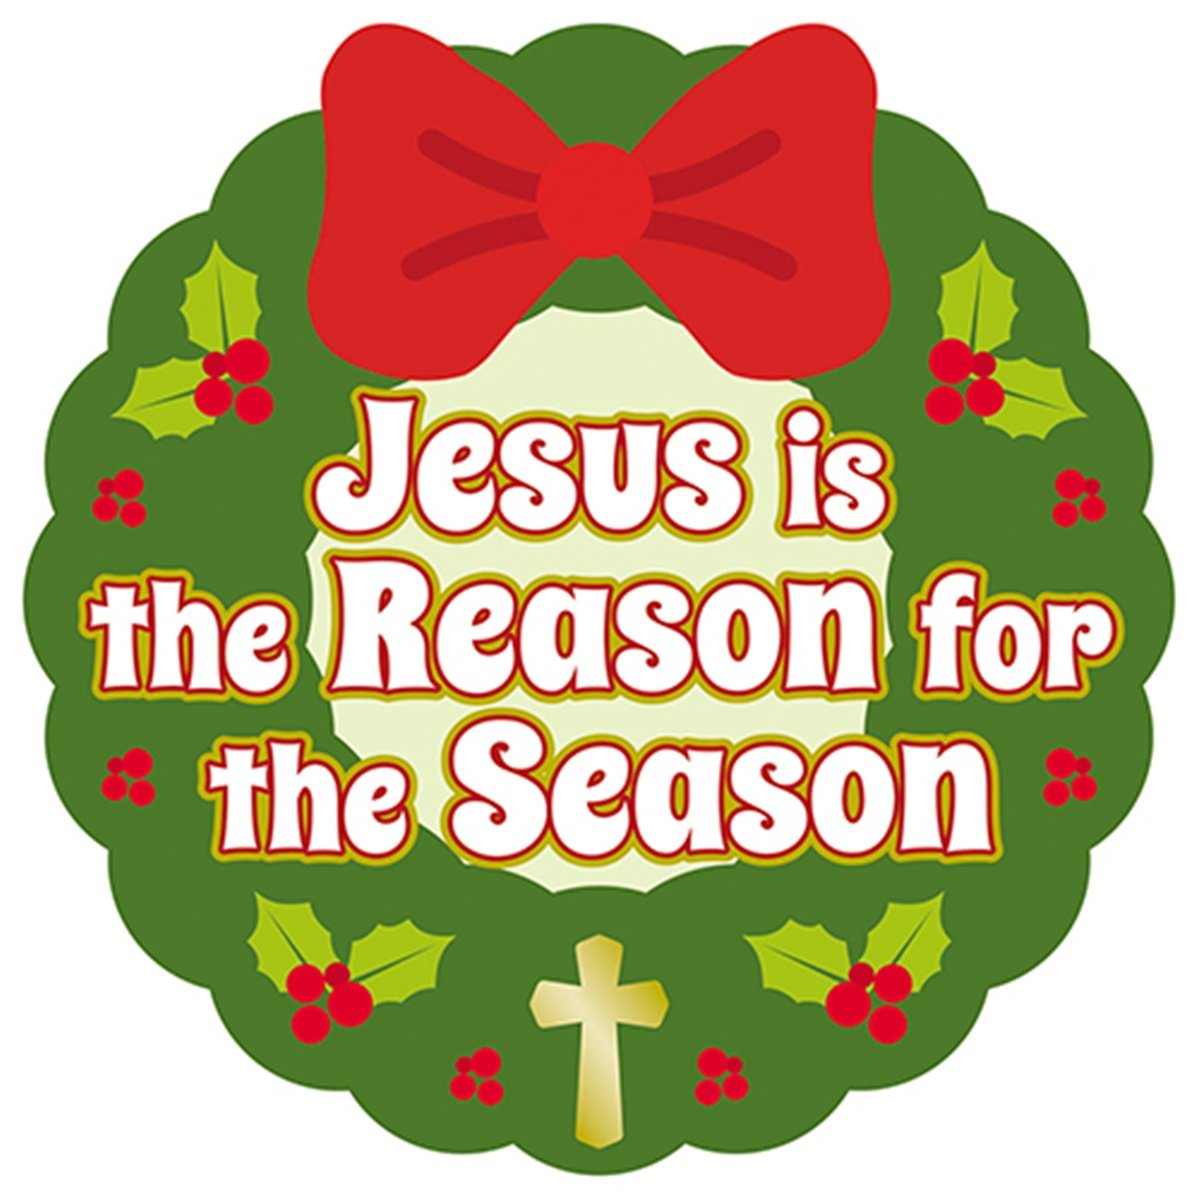 Jesus is the Reason for the Season Christmas Wreath Auto Magnet Bumper  Sticker, 6 Inch.